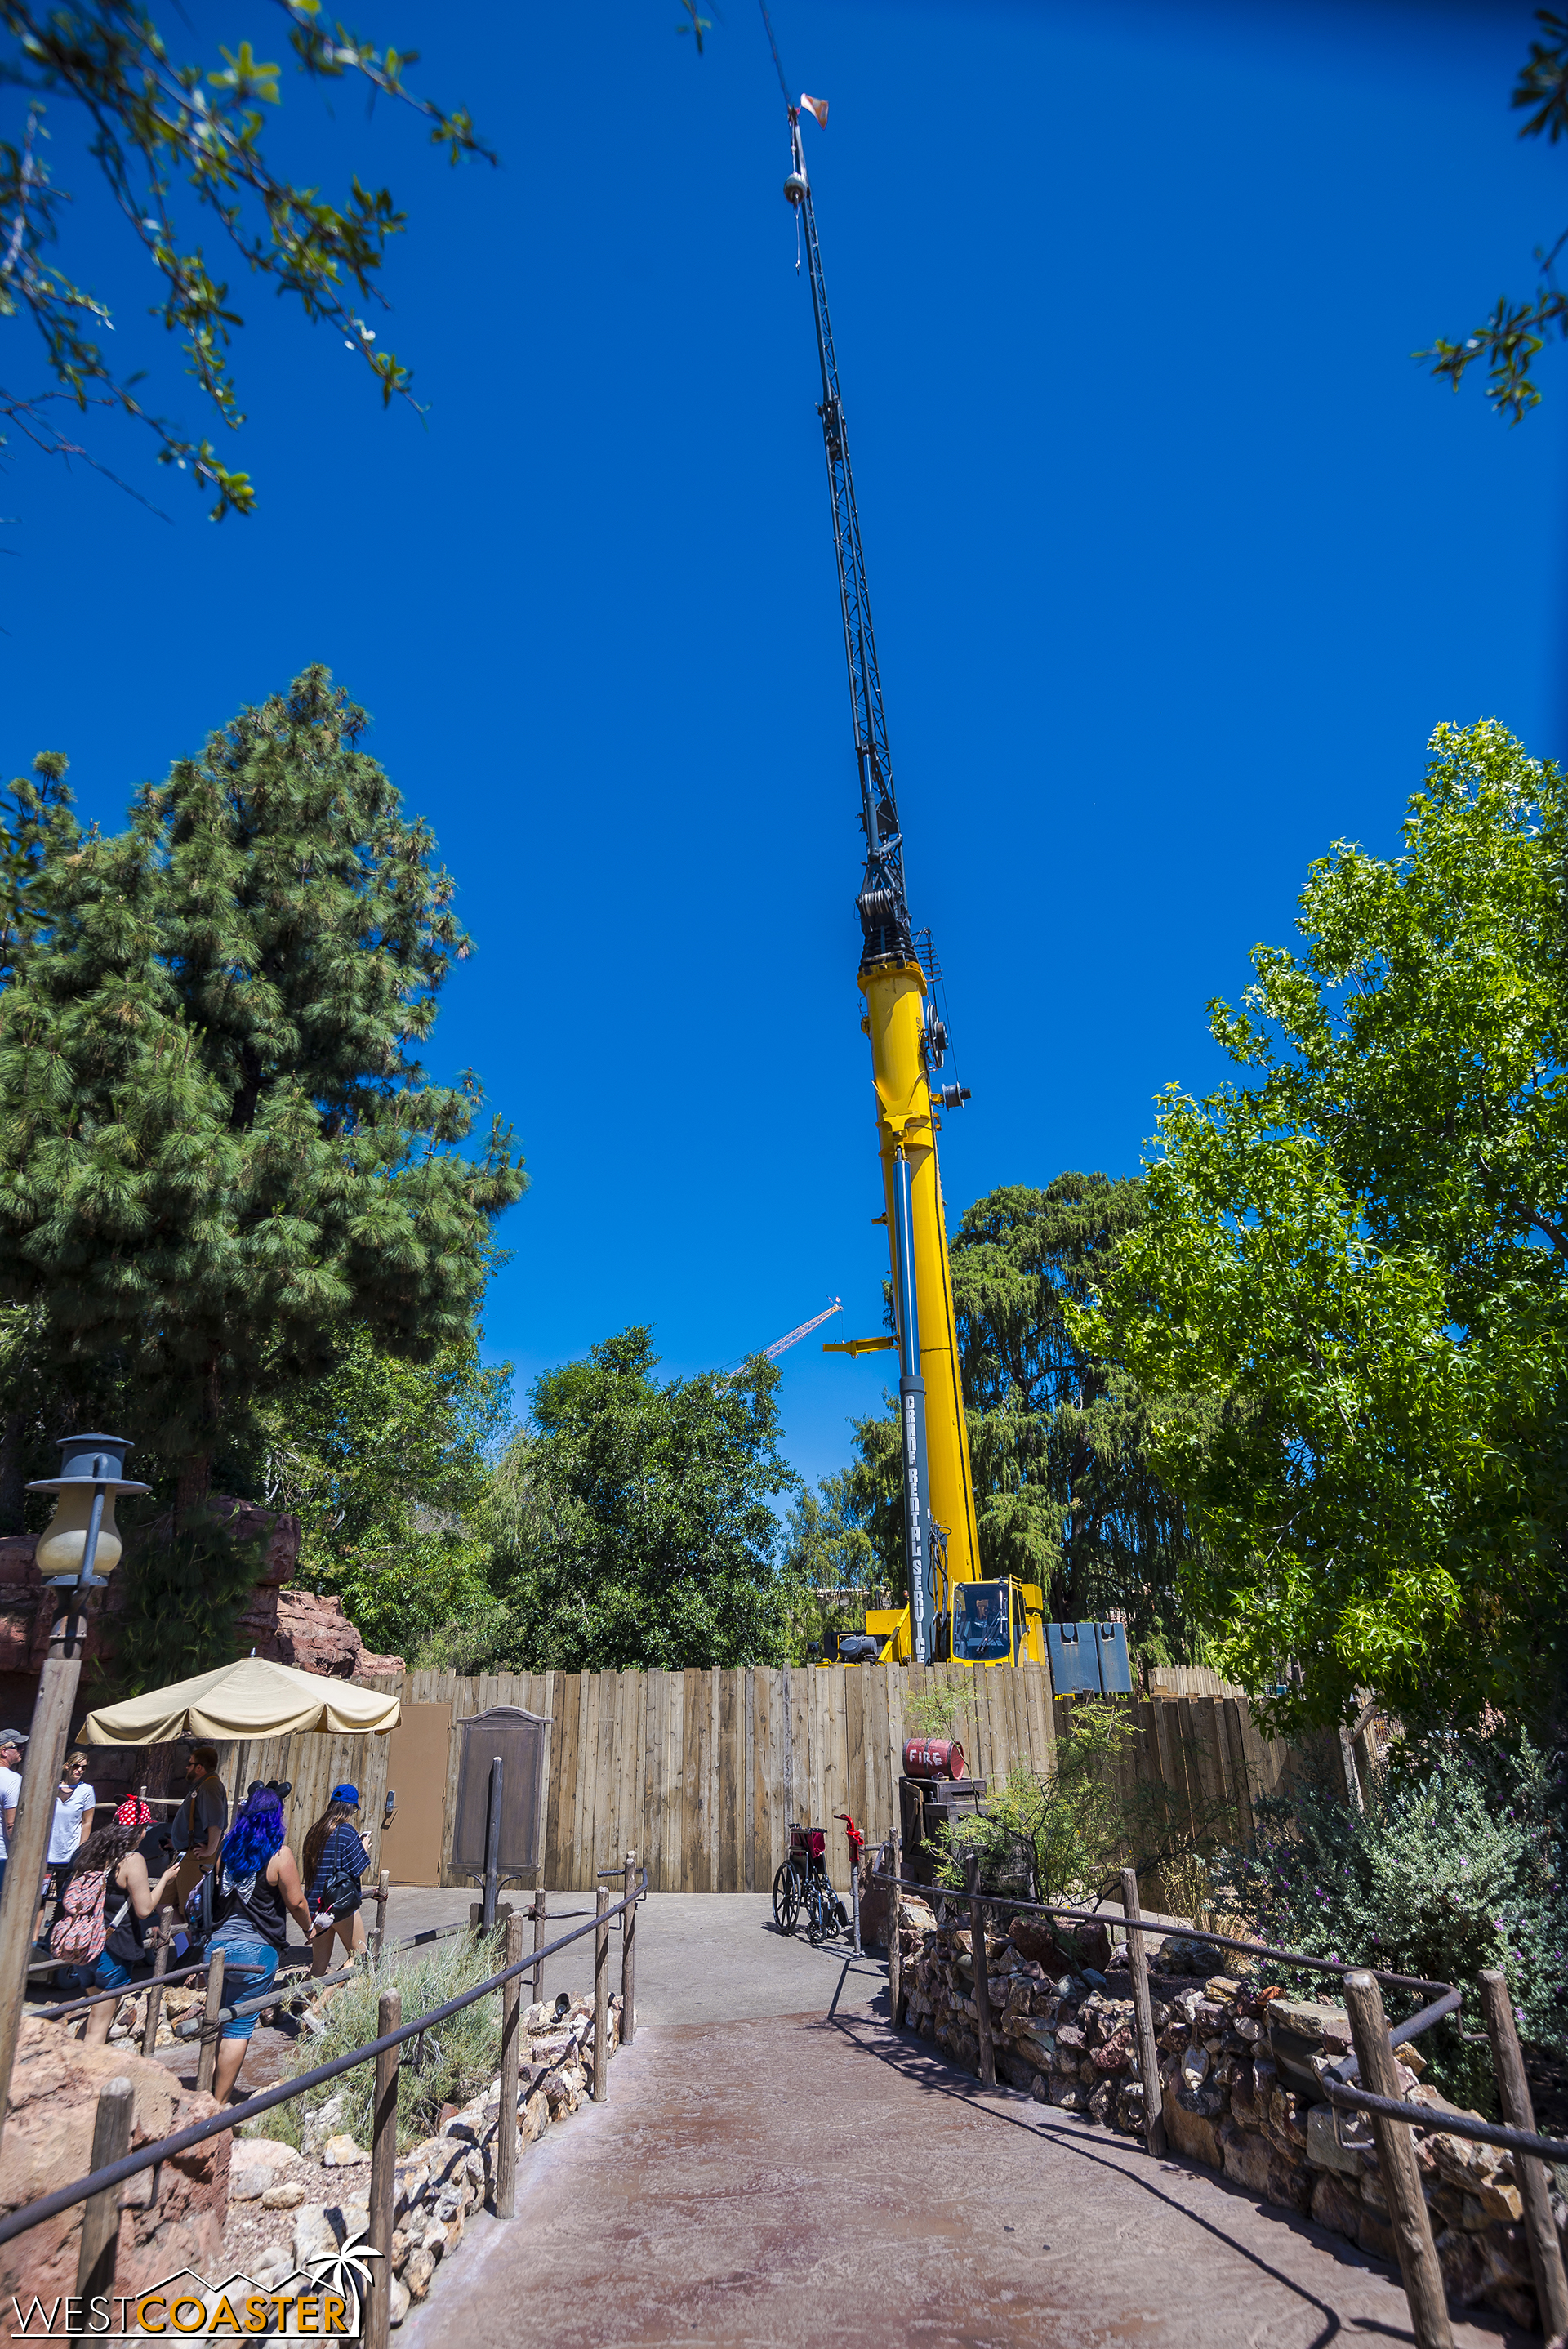 Another crane has appeared at Disneyland, and to prevent public access to this construction equipment, a new work wall is up basically at the end of the Big Thunder Mountain exit.